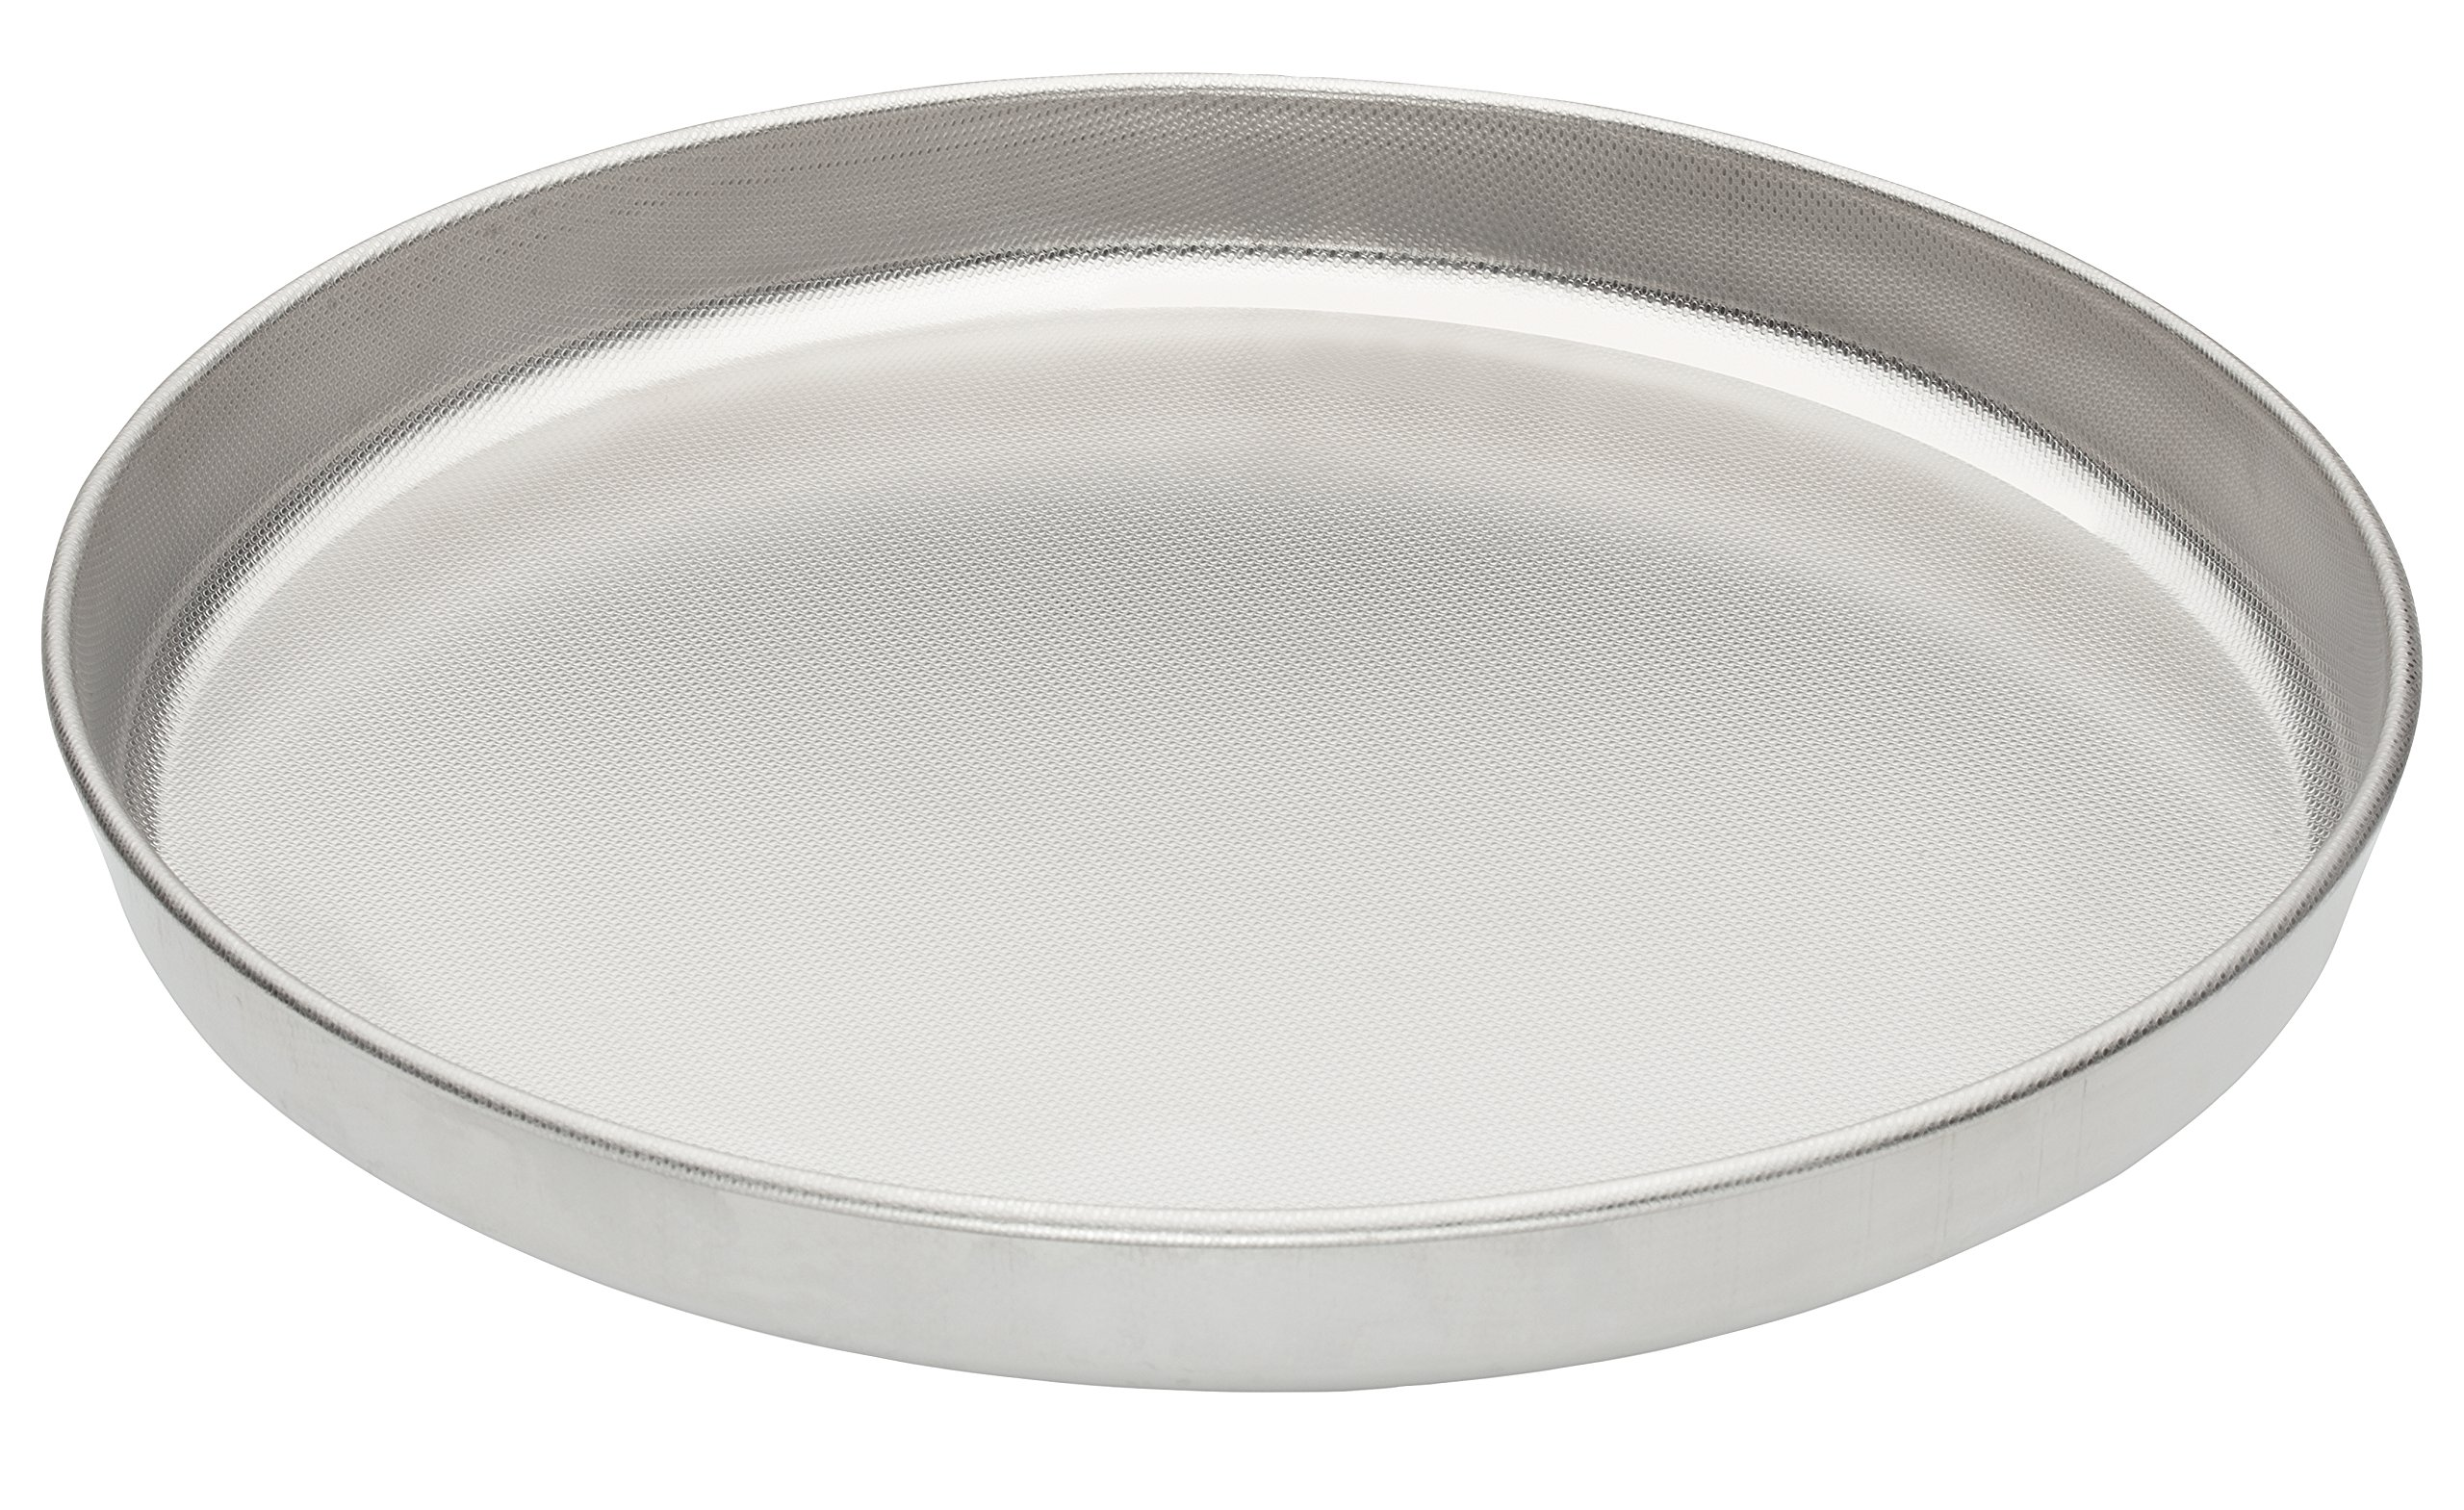 Fante's Micro-Textured Pizza Pan, 18/10 Stainless Steel, 13-Inch, The Italian Market Original since 1906